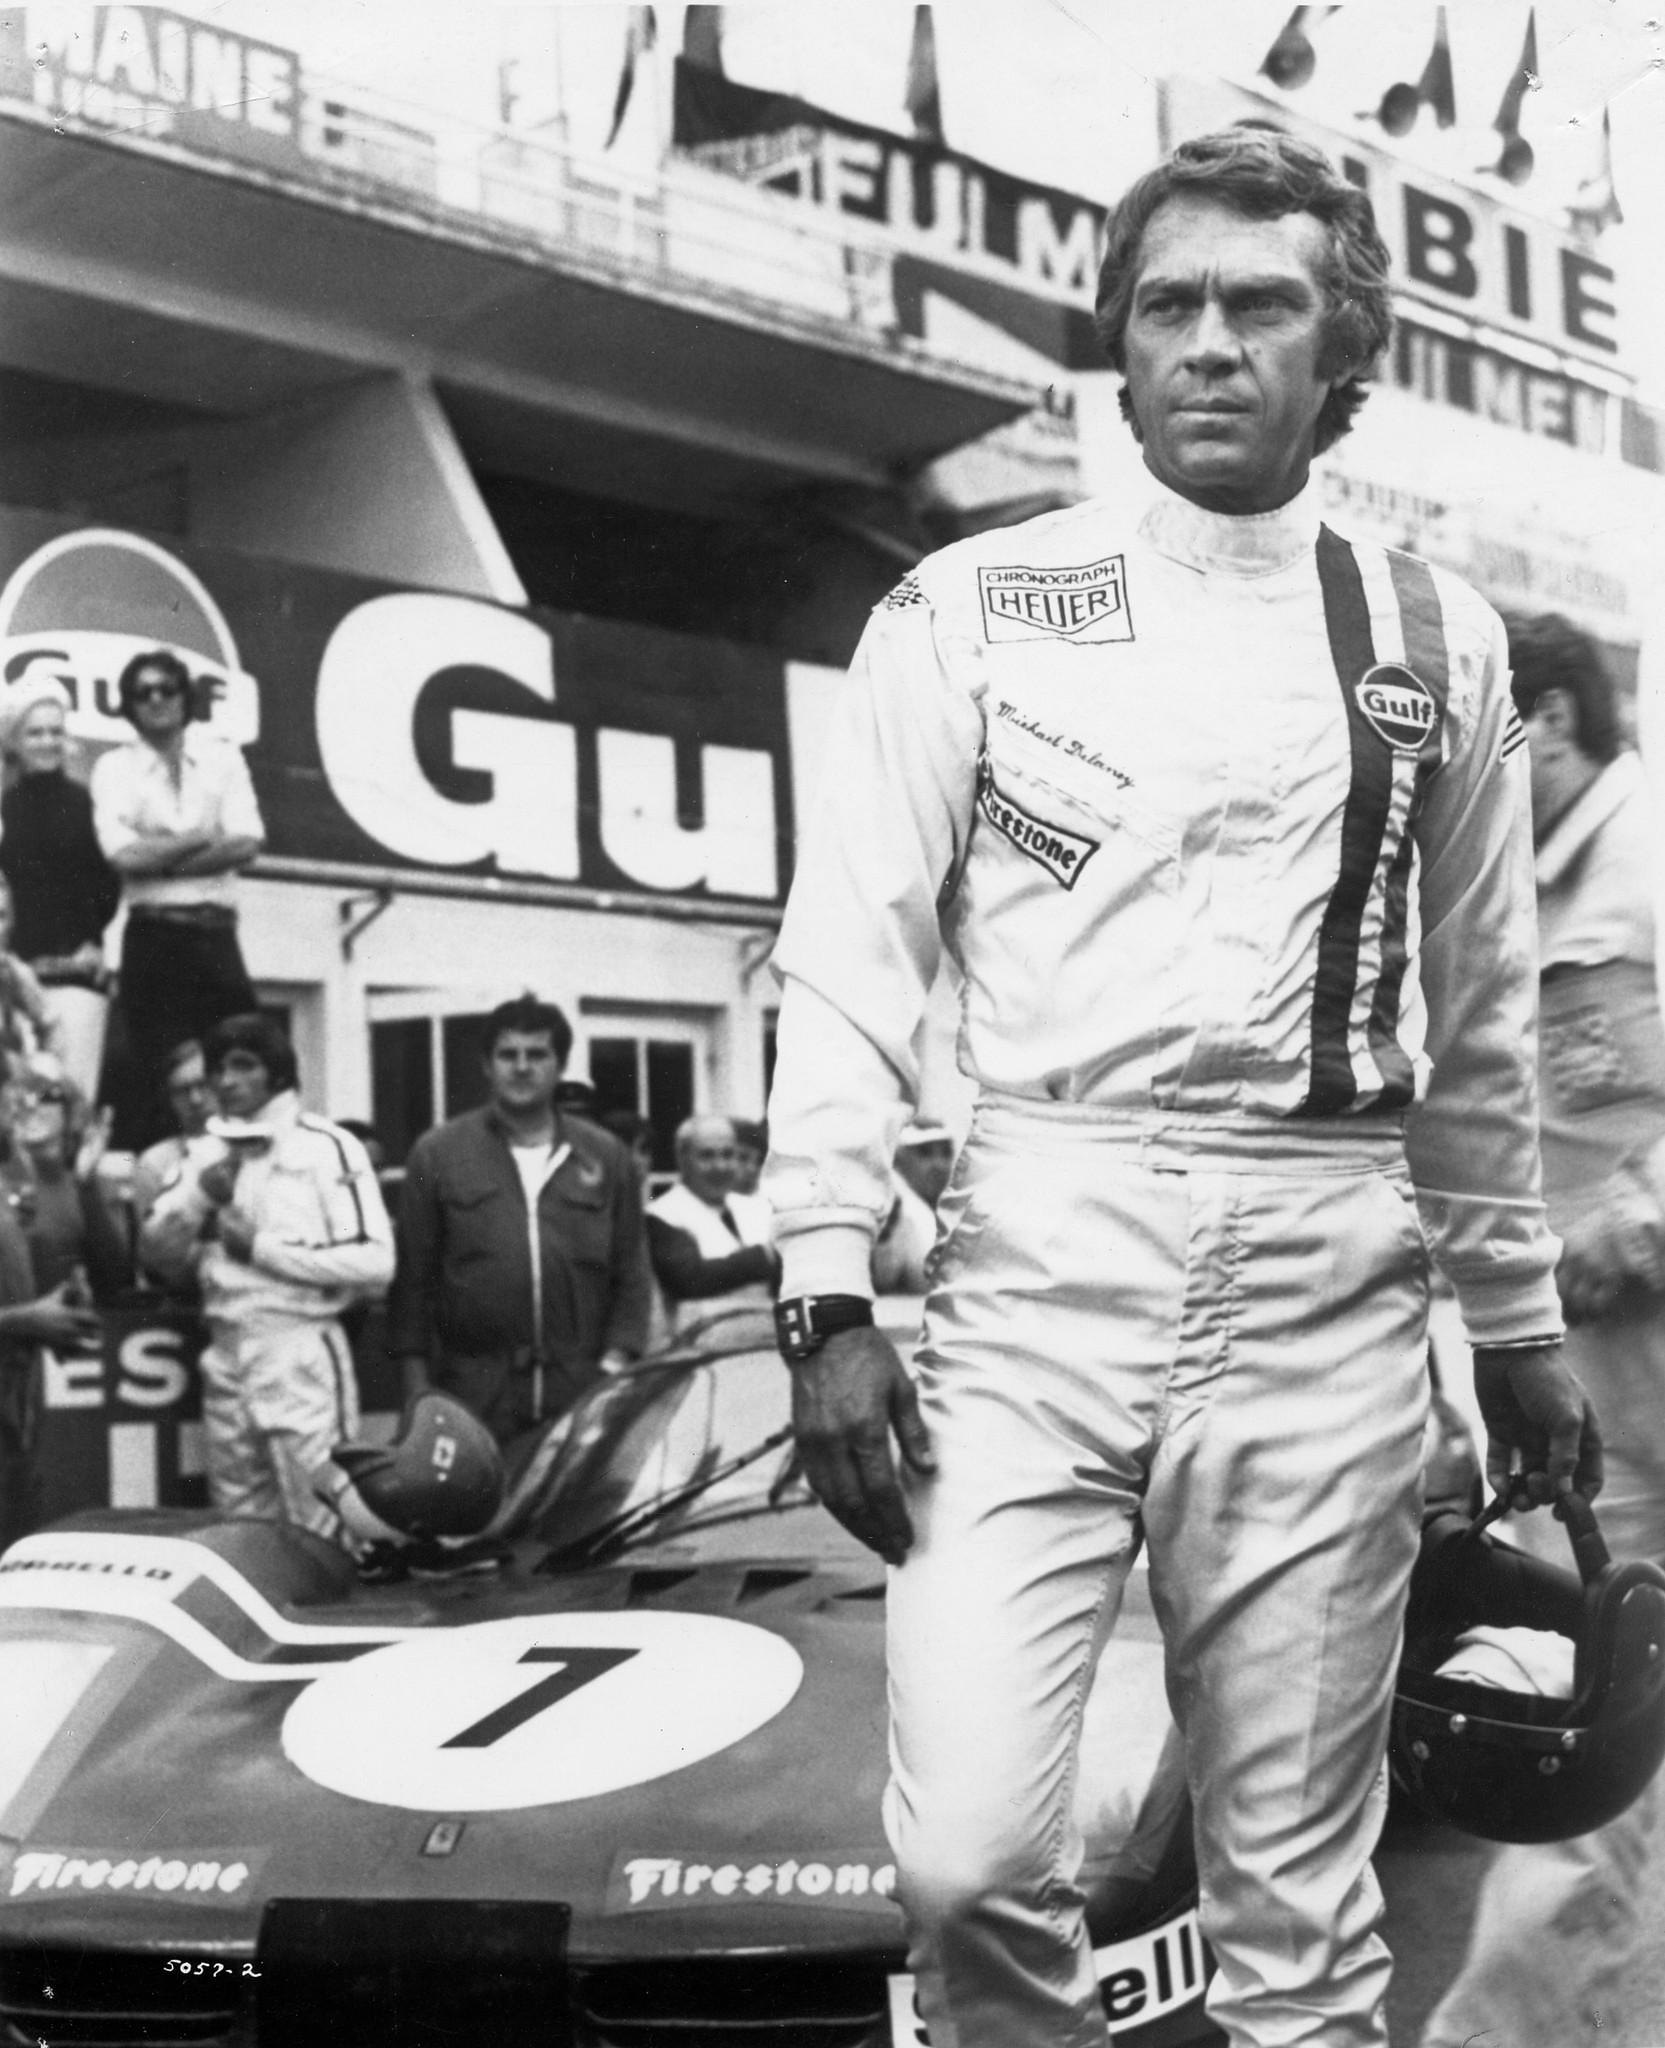 Steve McQueen on Le Mans race track with Heuer Monaco watch on.